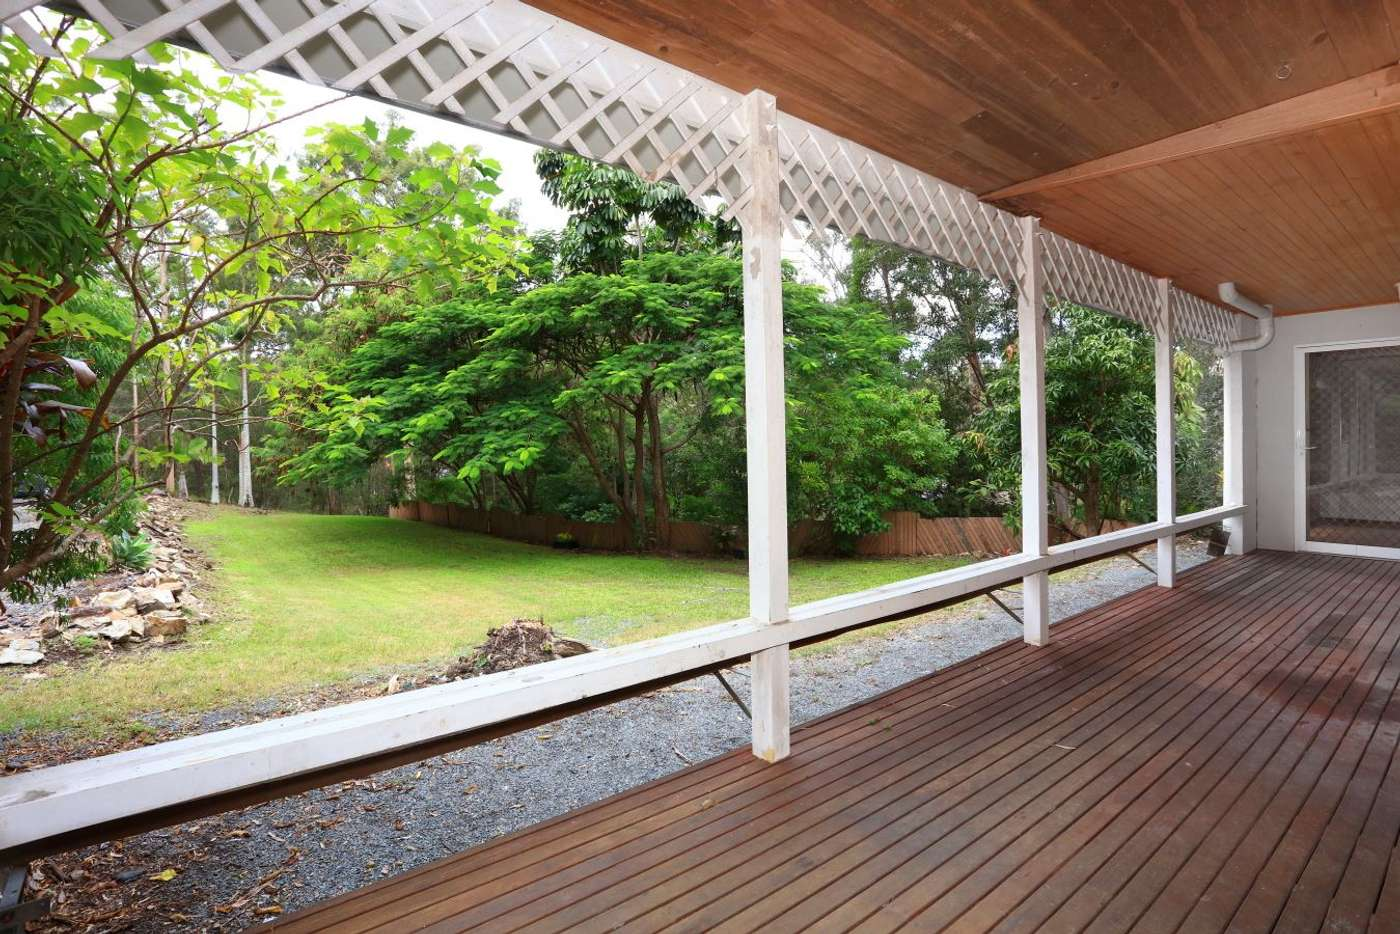 Fifth view of Homely house listing, 141 San Fernando Drive, Worongary QLD 4213